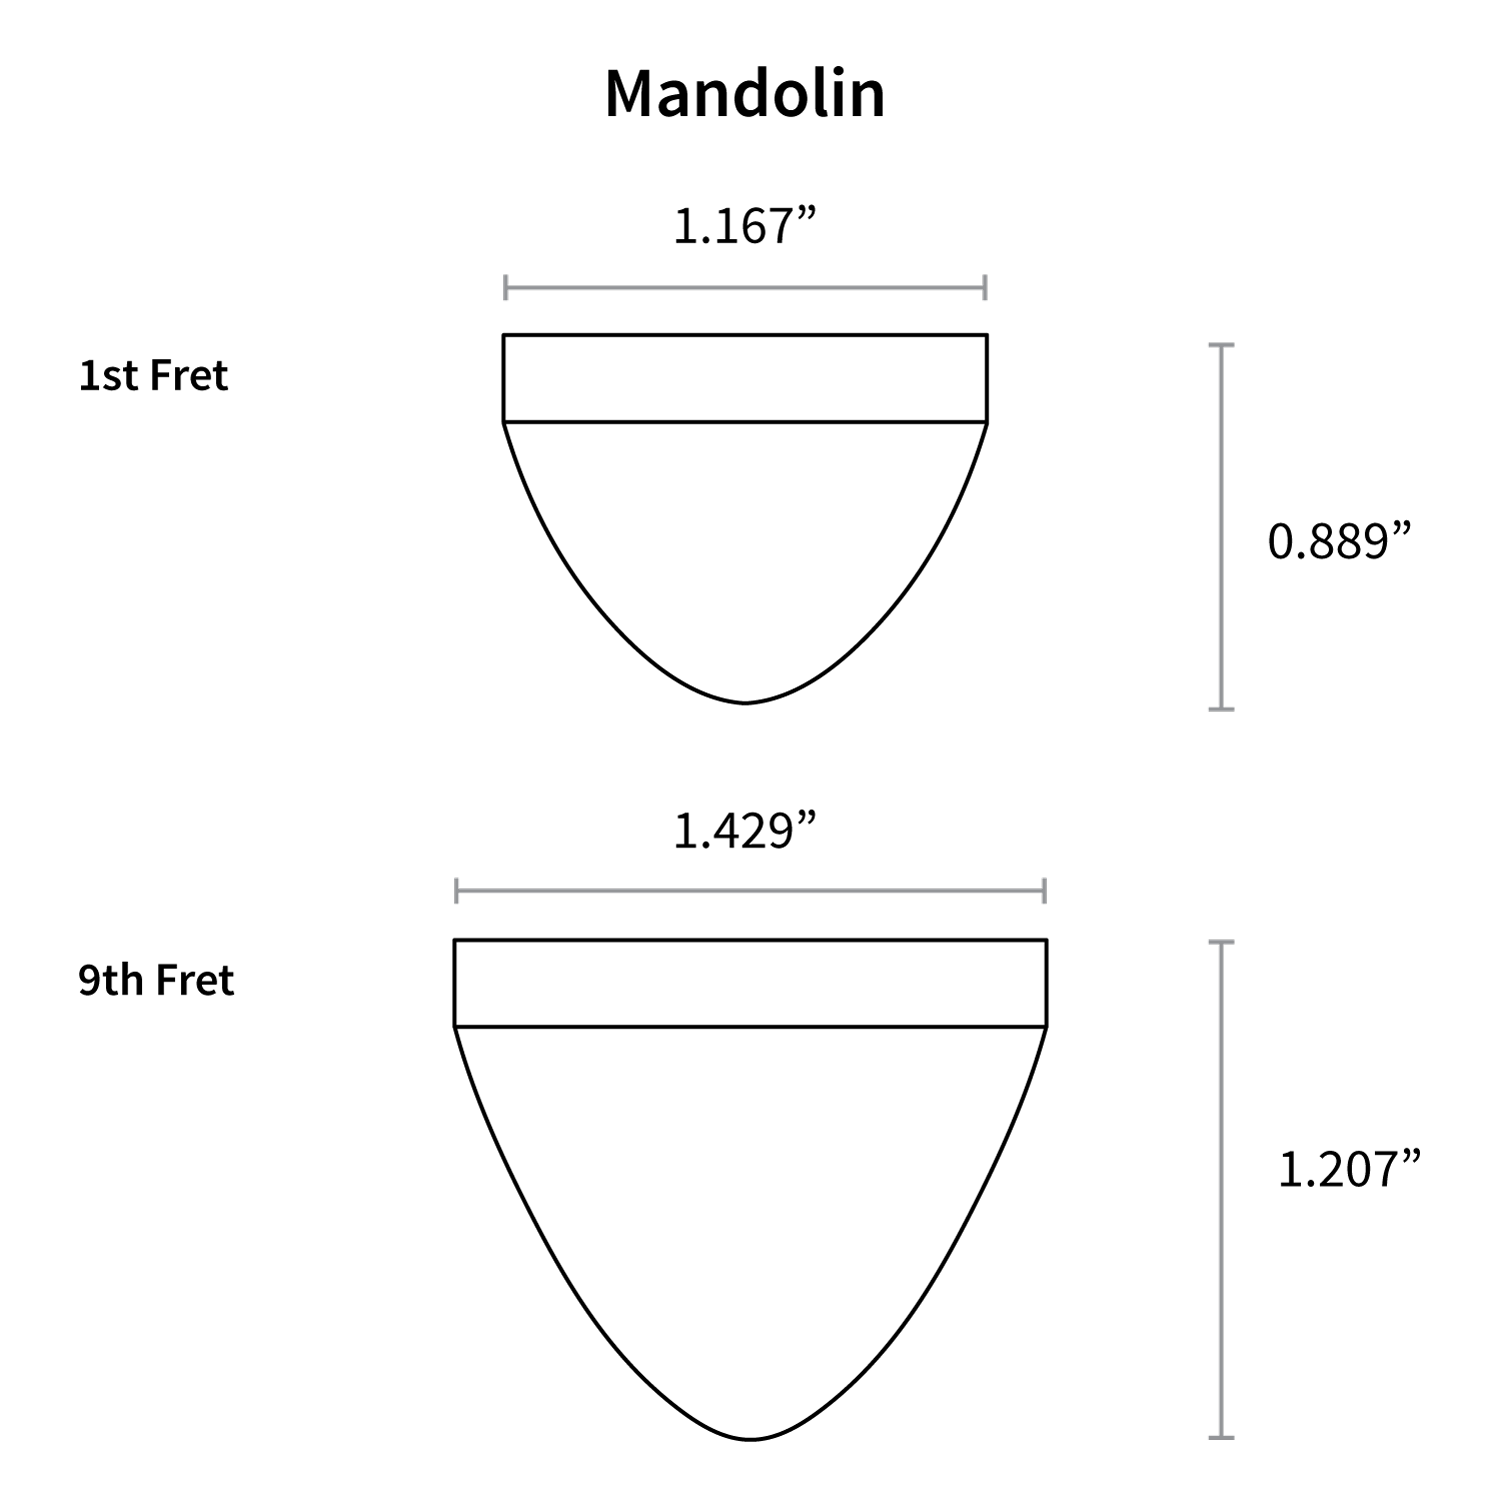 small resolution of mandolin neck diagram images gallery